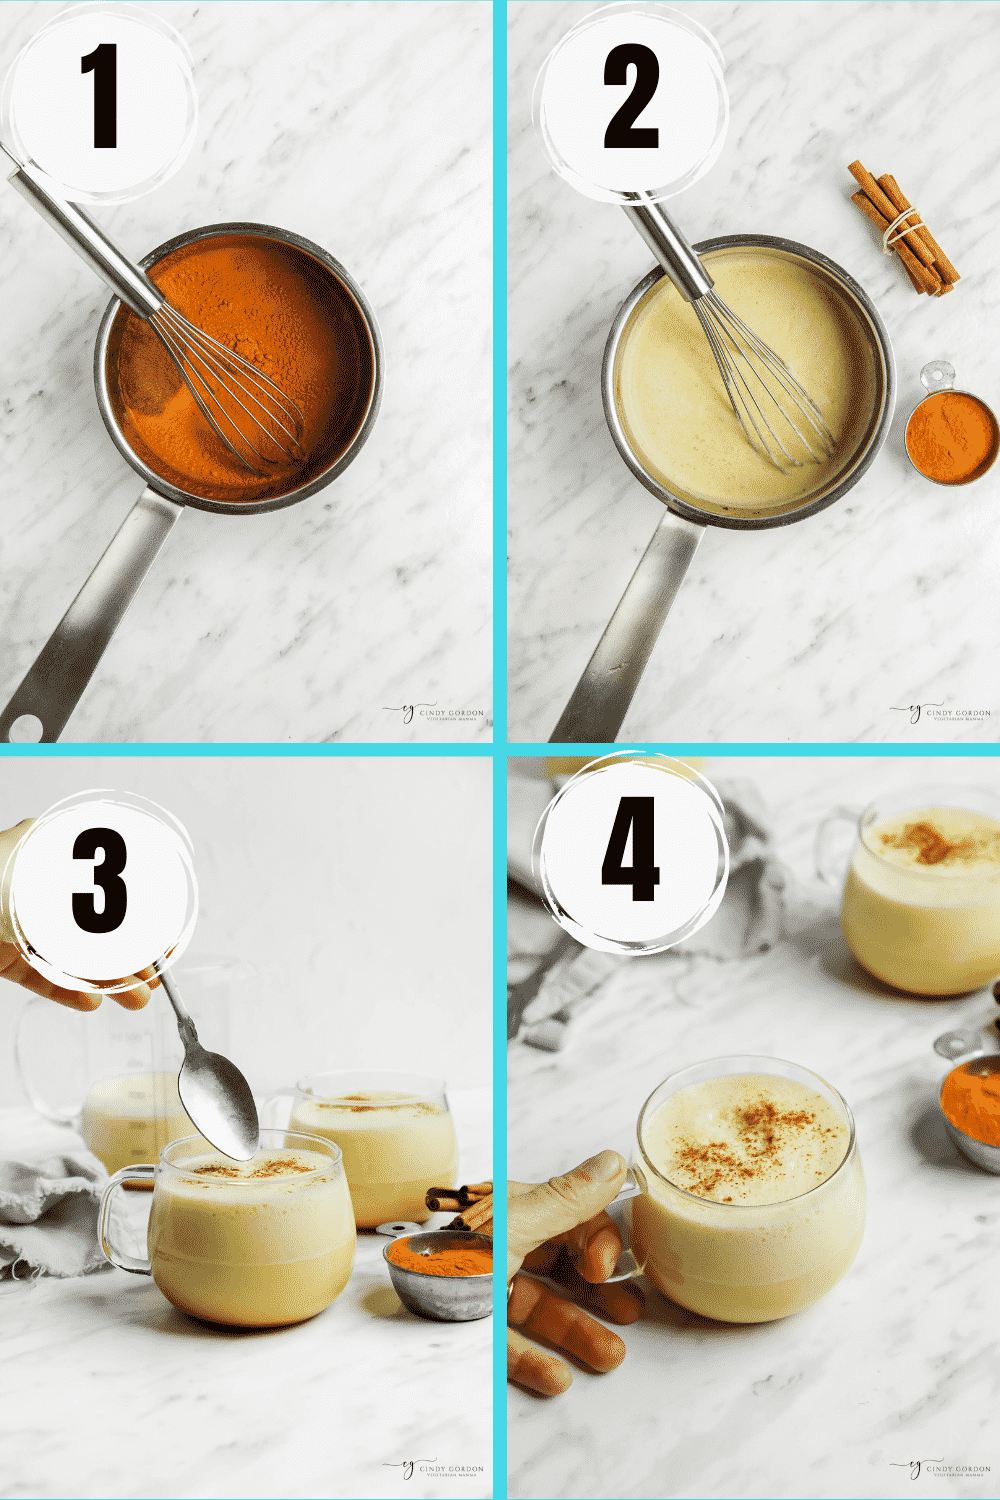 four step collage photo showing how to make turmeric lattes. Mixing ingredients, whisking, heating, put into glasses